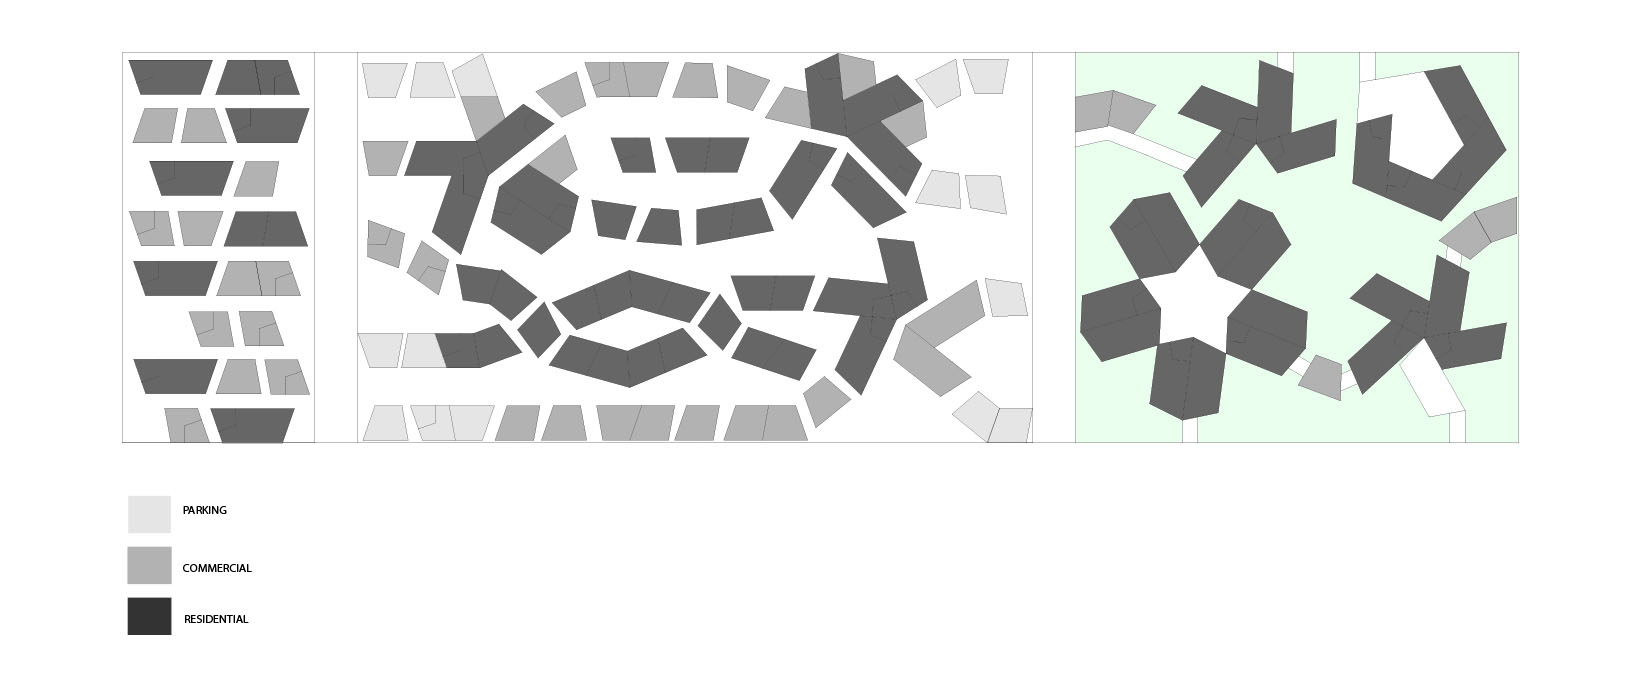 The first iteration of my site plan. The colors were intended to categorize each structure into parking, commercial or residential.